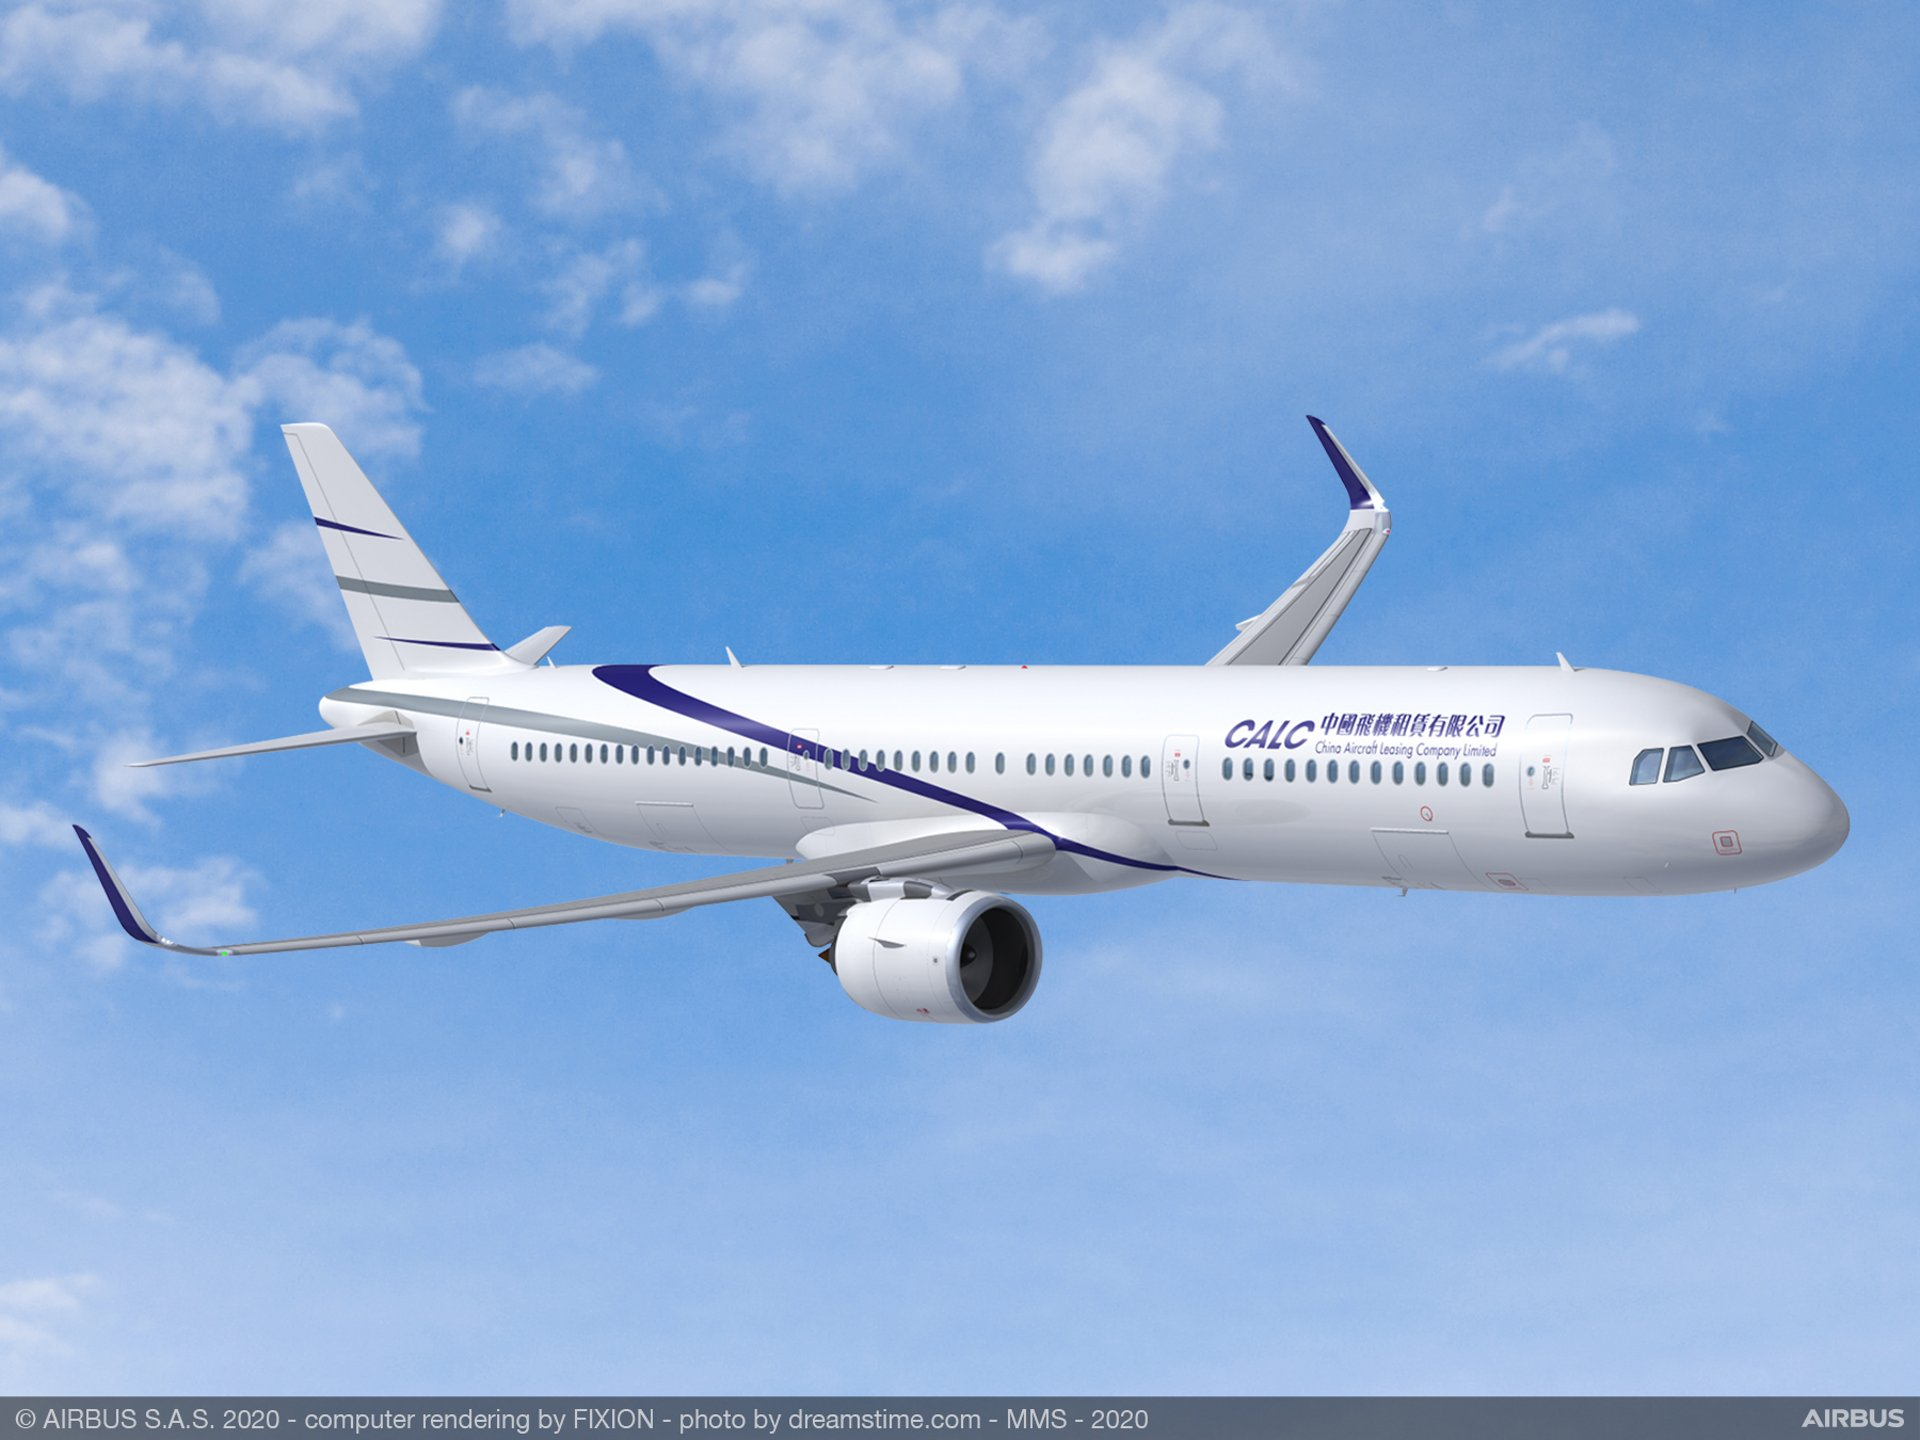 China Aircraft Leasing Group Holdings Limited's (CALC) new agreement with Airbus on its remaining backlog includes an additional order 40 A321neo aircraft